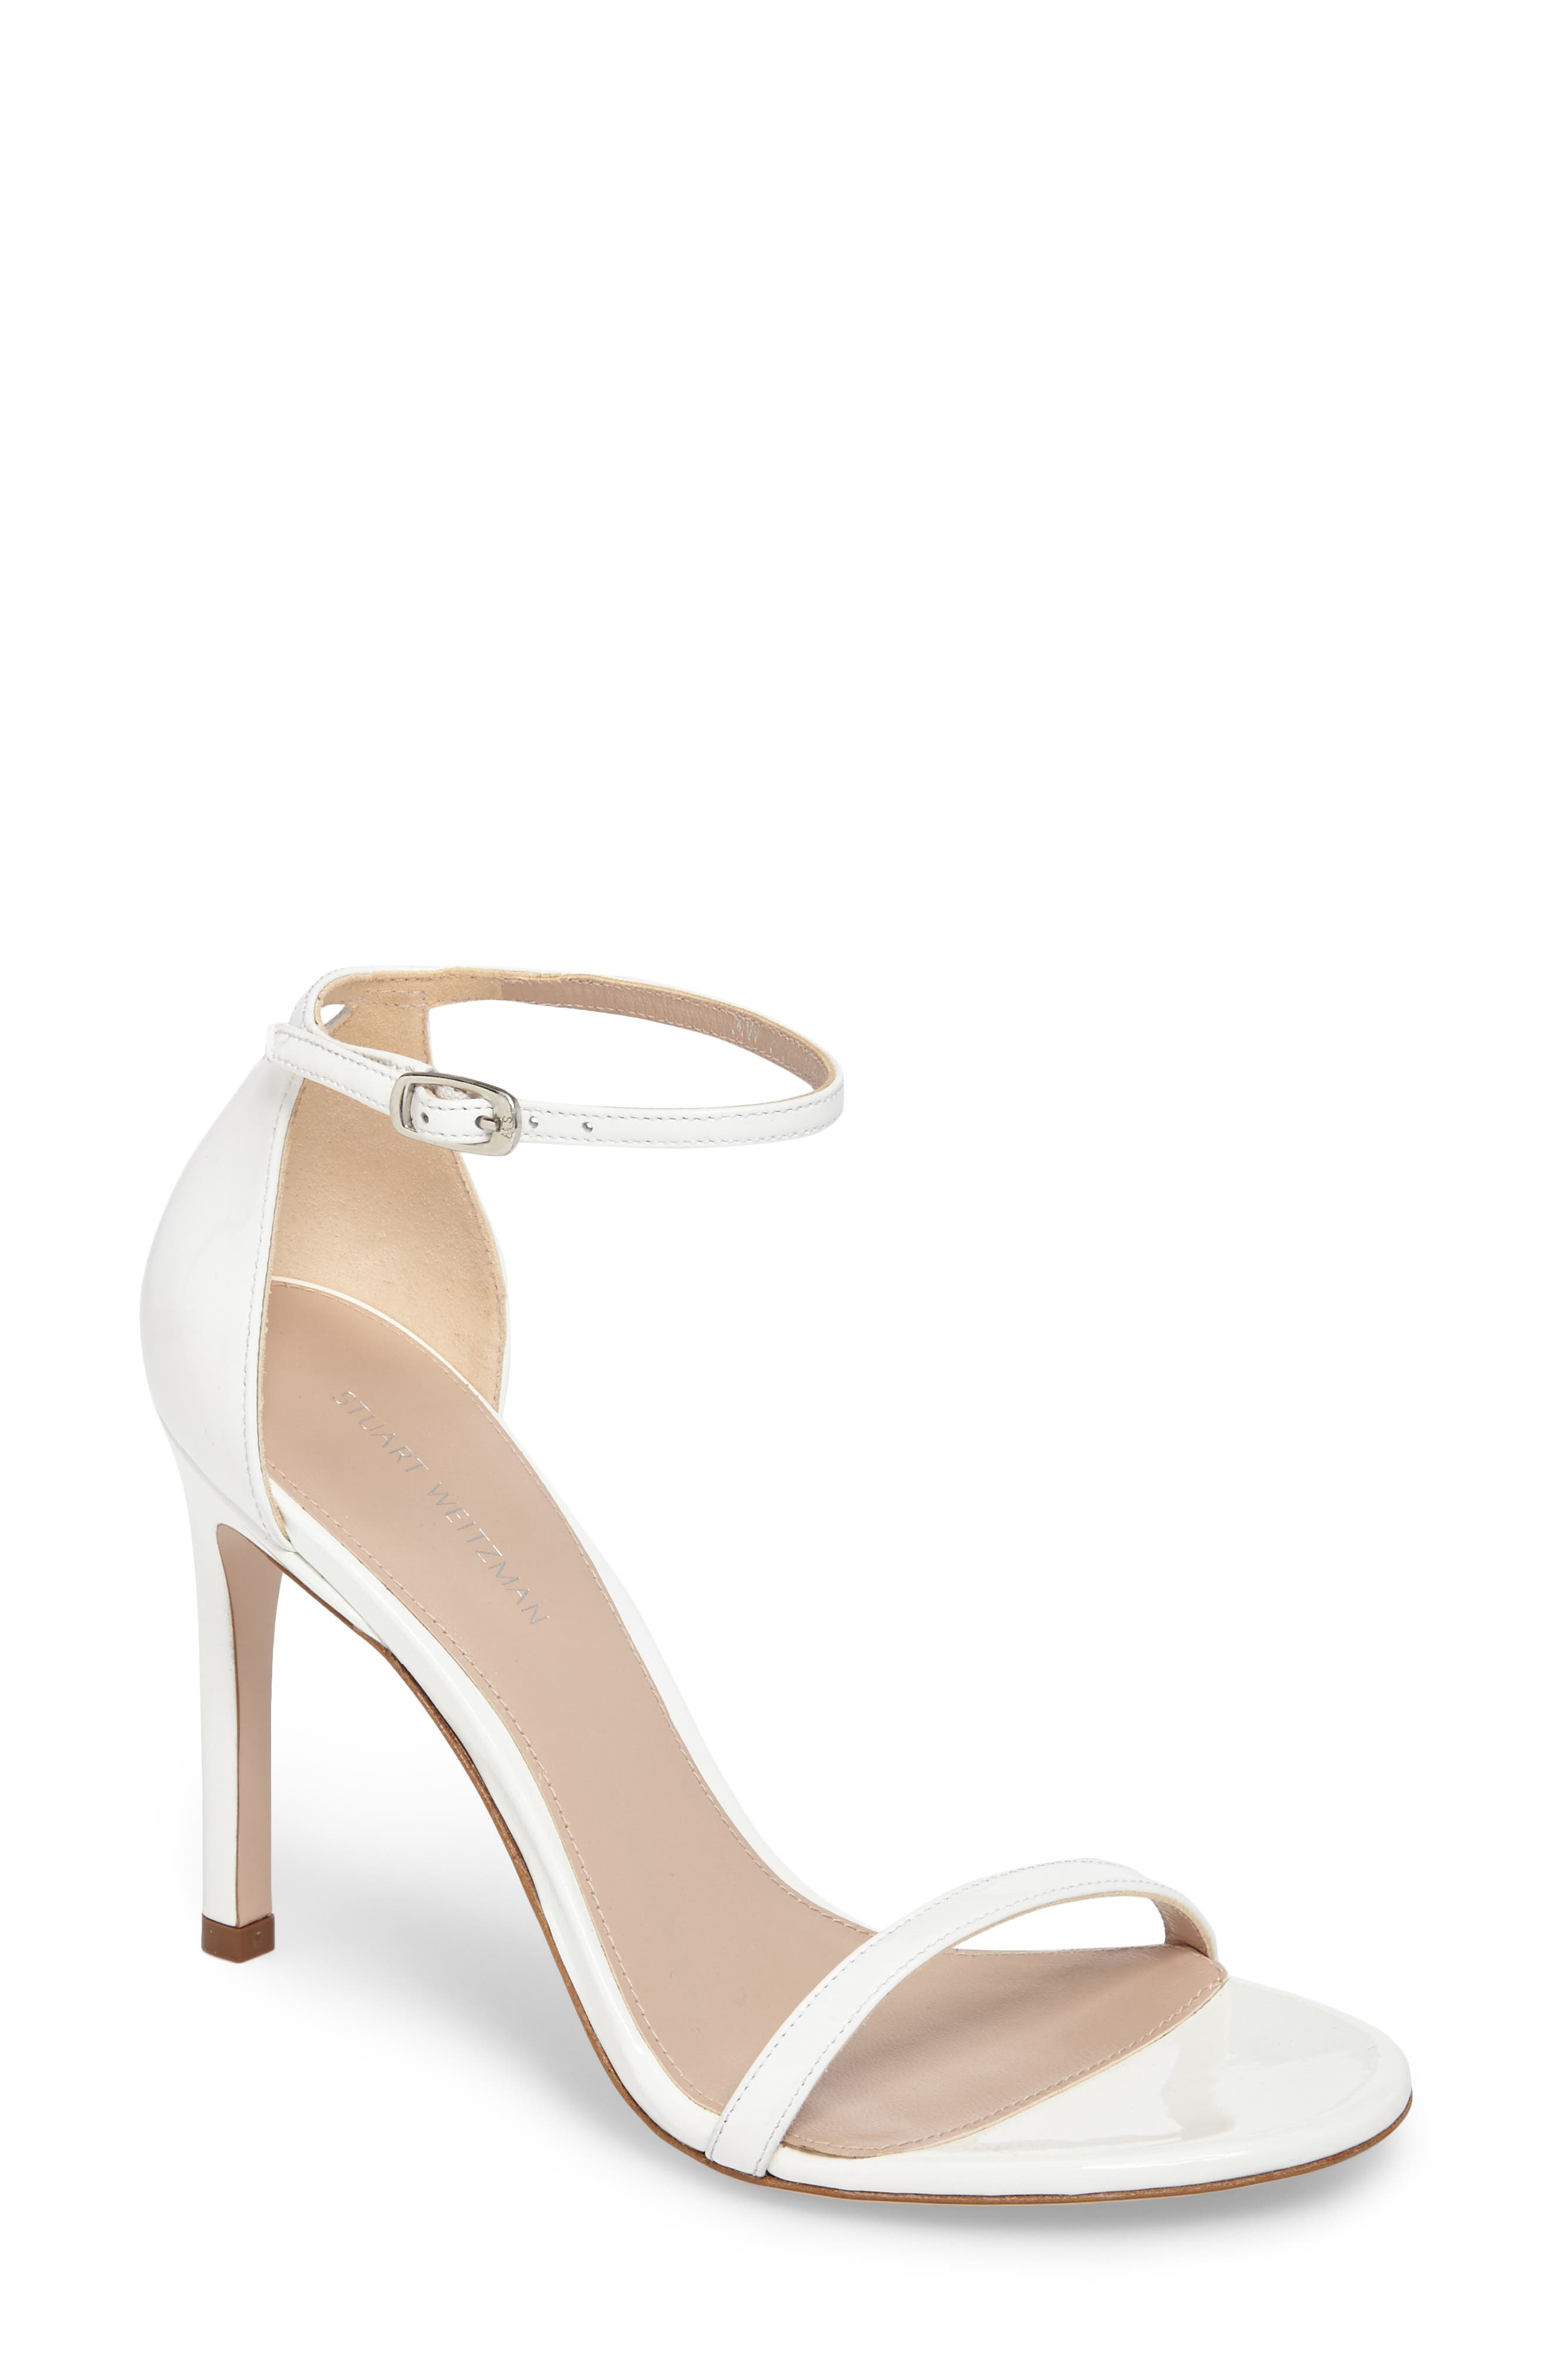 Nudistsong Ankle Strap Sandal,                             Main thumbnail 4, color,